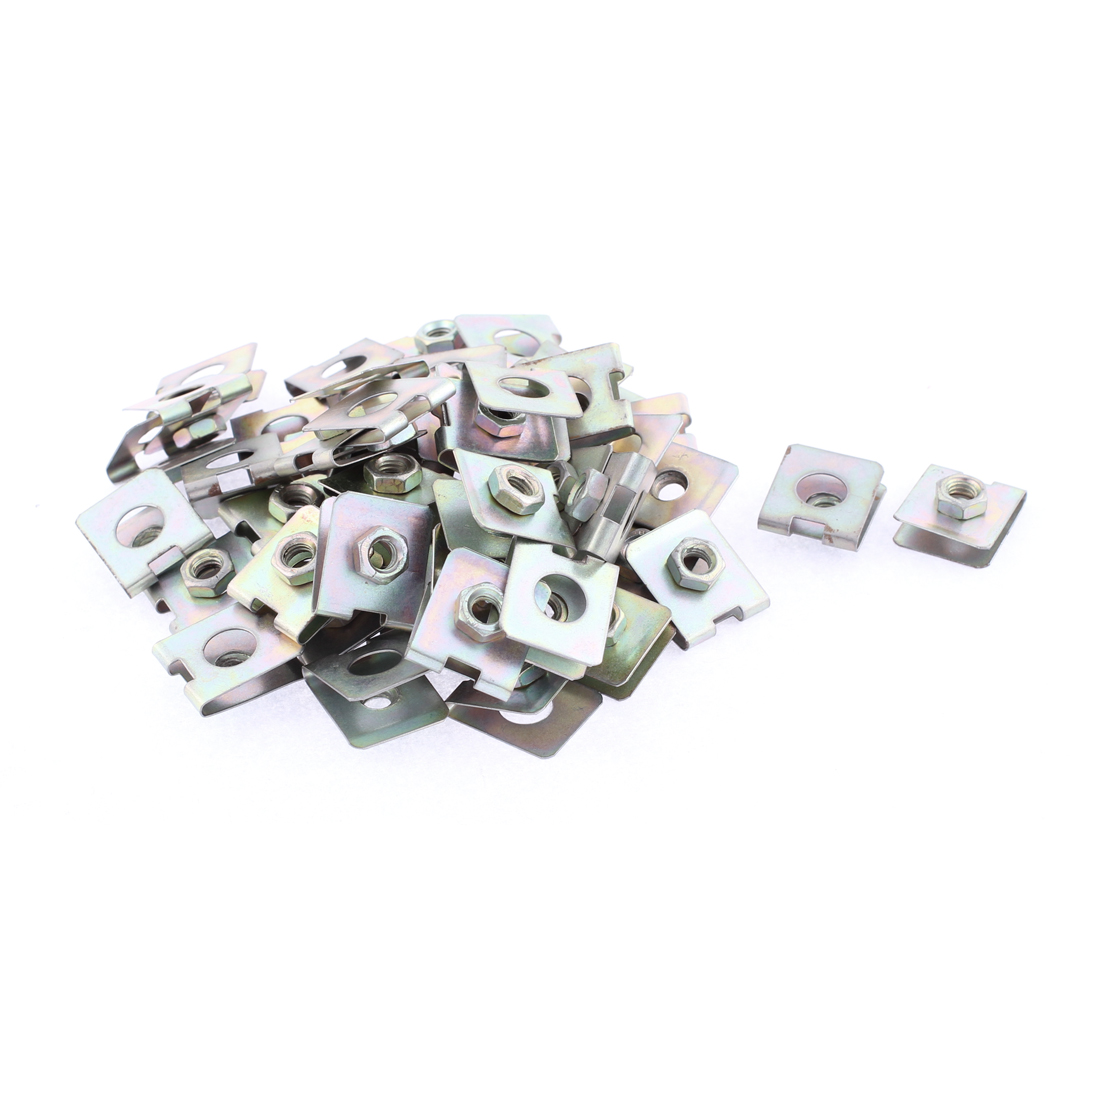 50 Pcs 23mm x 20mm Metal Plate U-Type Clips Speed Nuts for Car Panel Fender